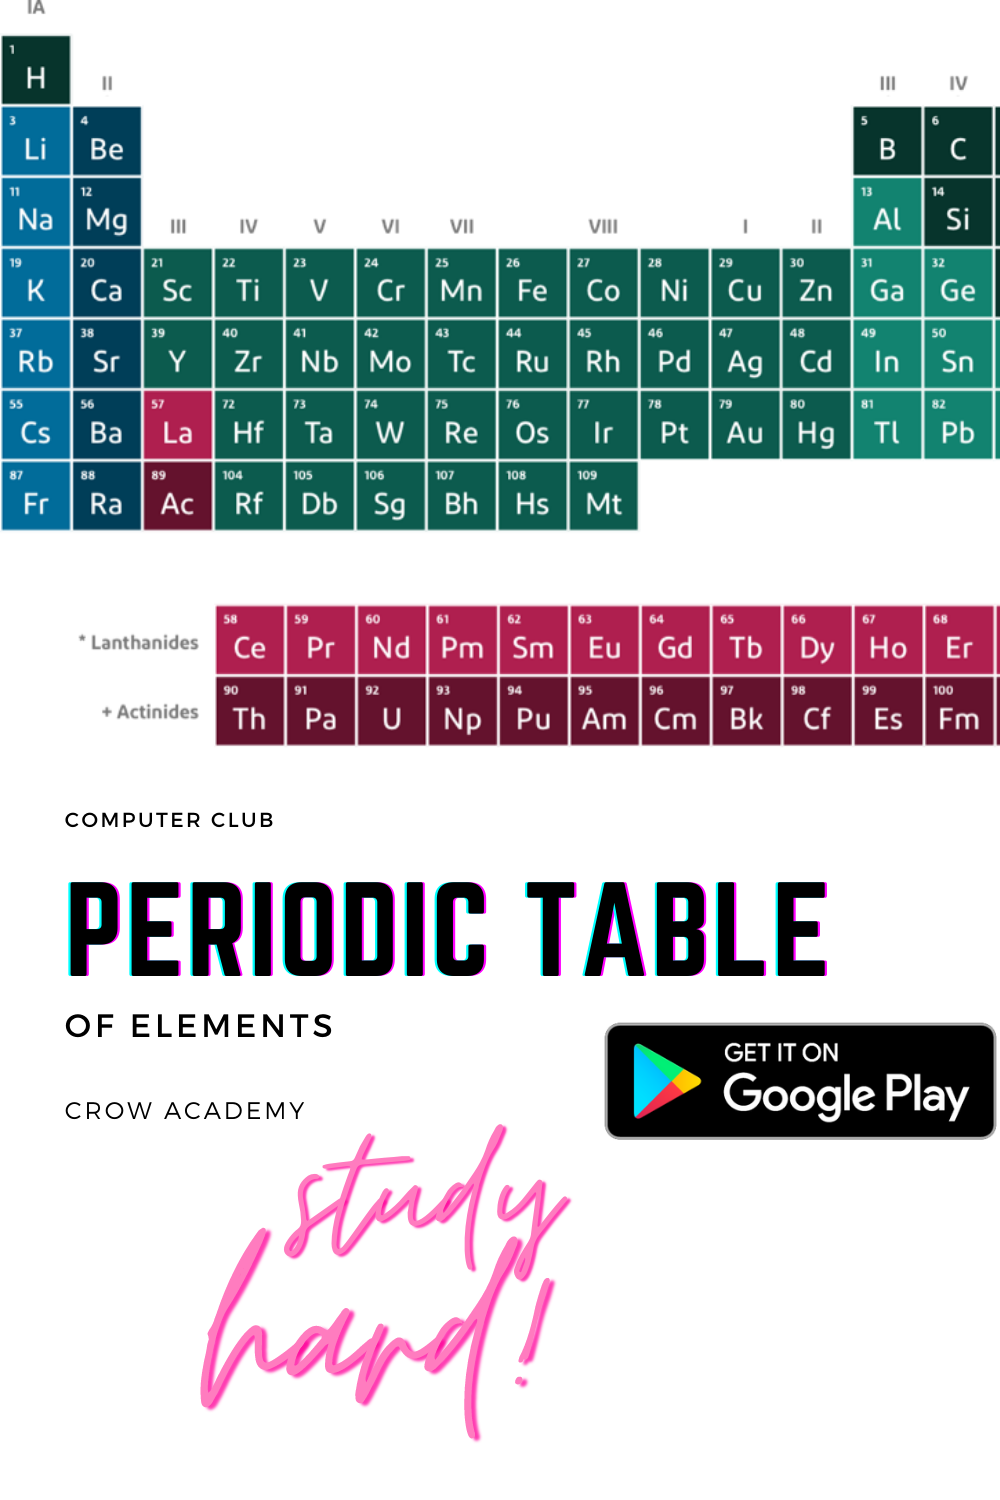 Periodic Table Of Elements Android App Element Chemistry Periodic Table App